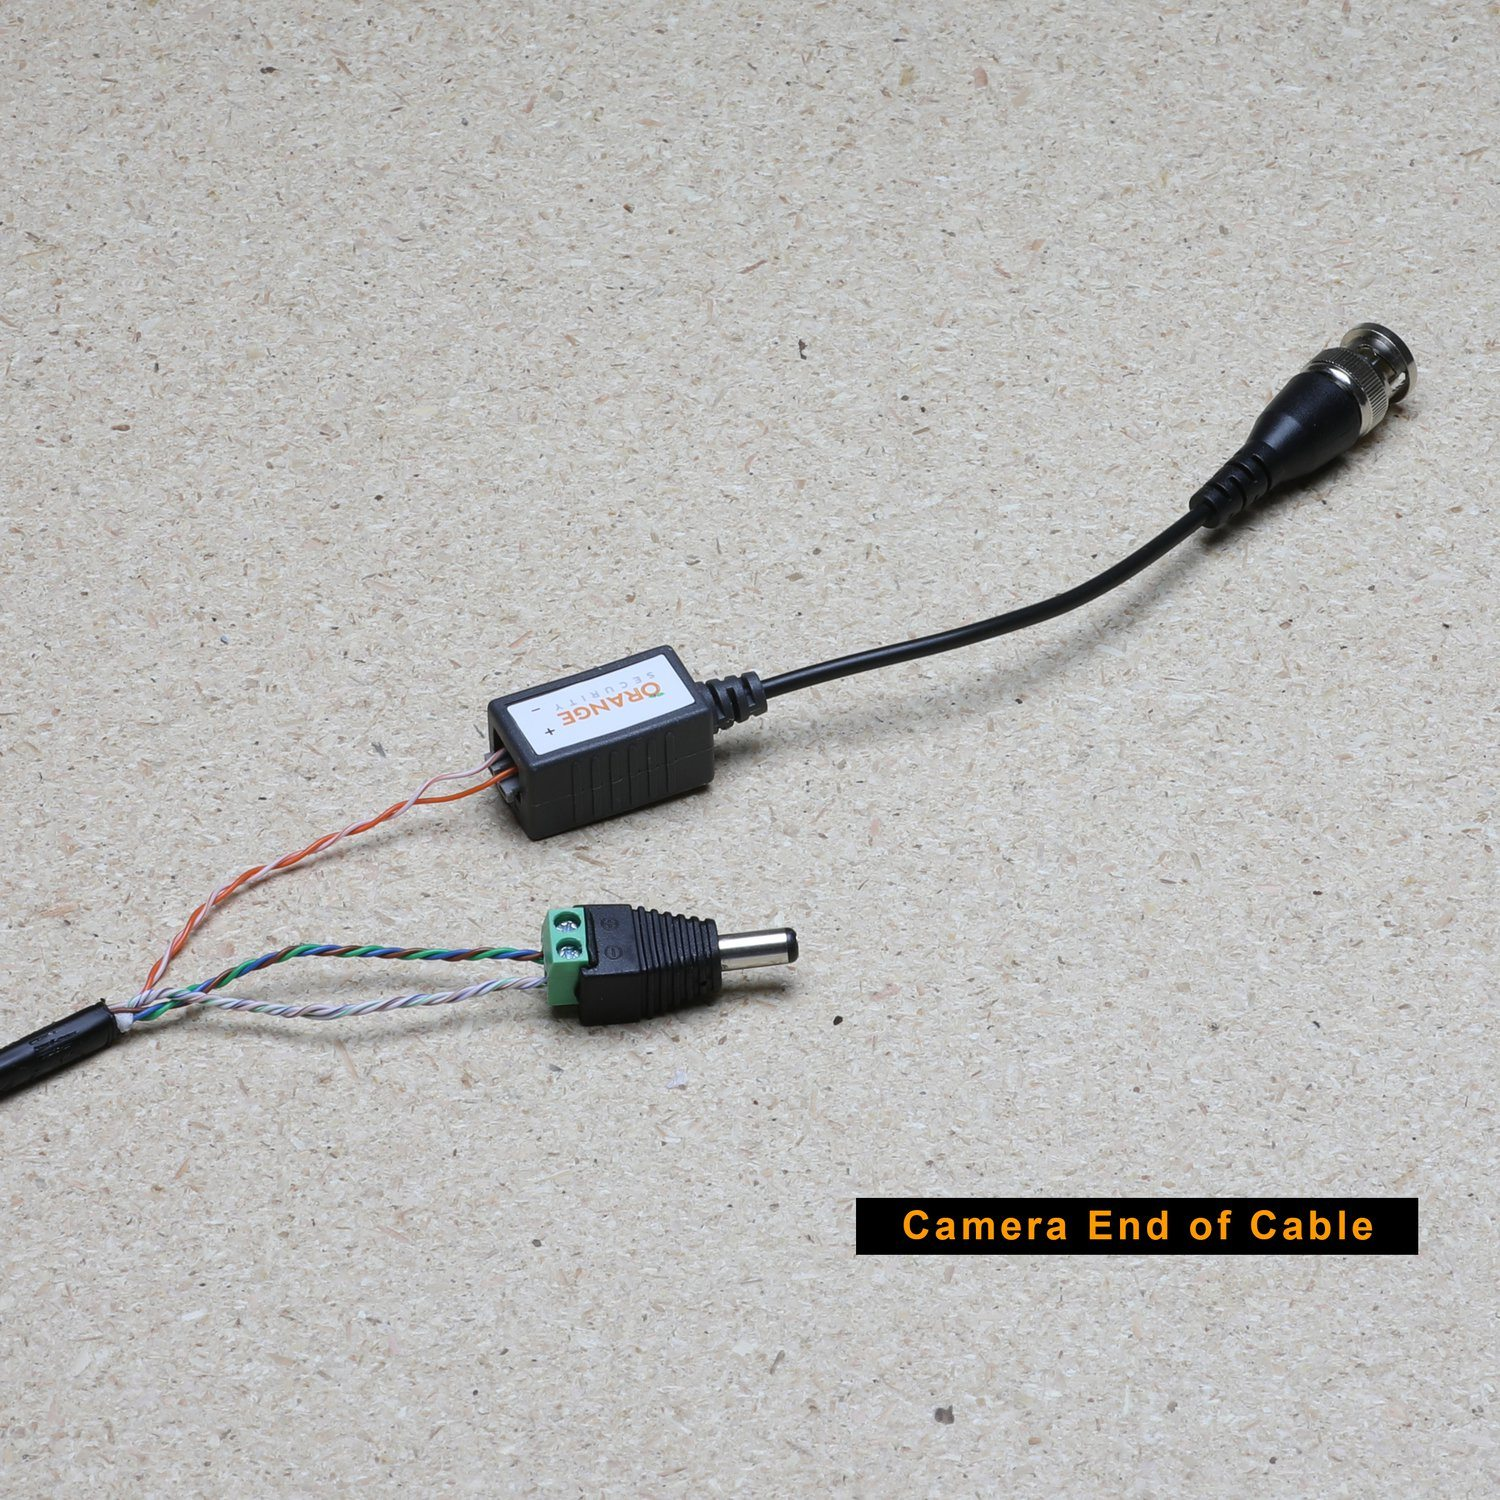 Cat5e Wiring Guide For Cctv Security Camera Systems